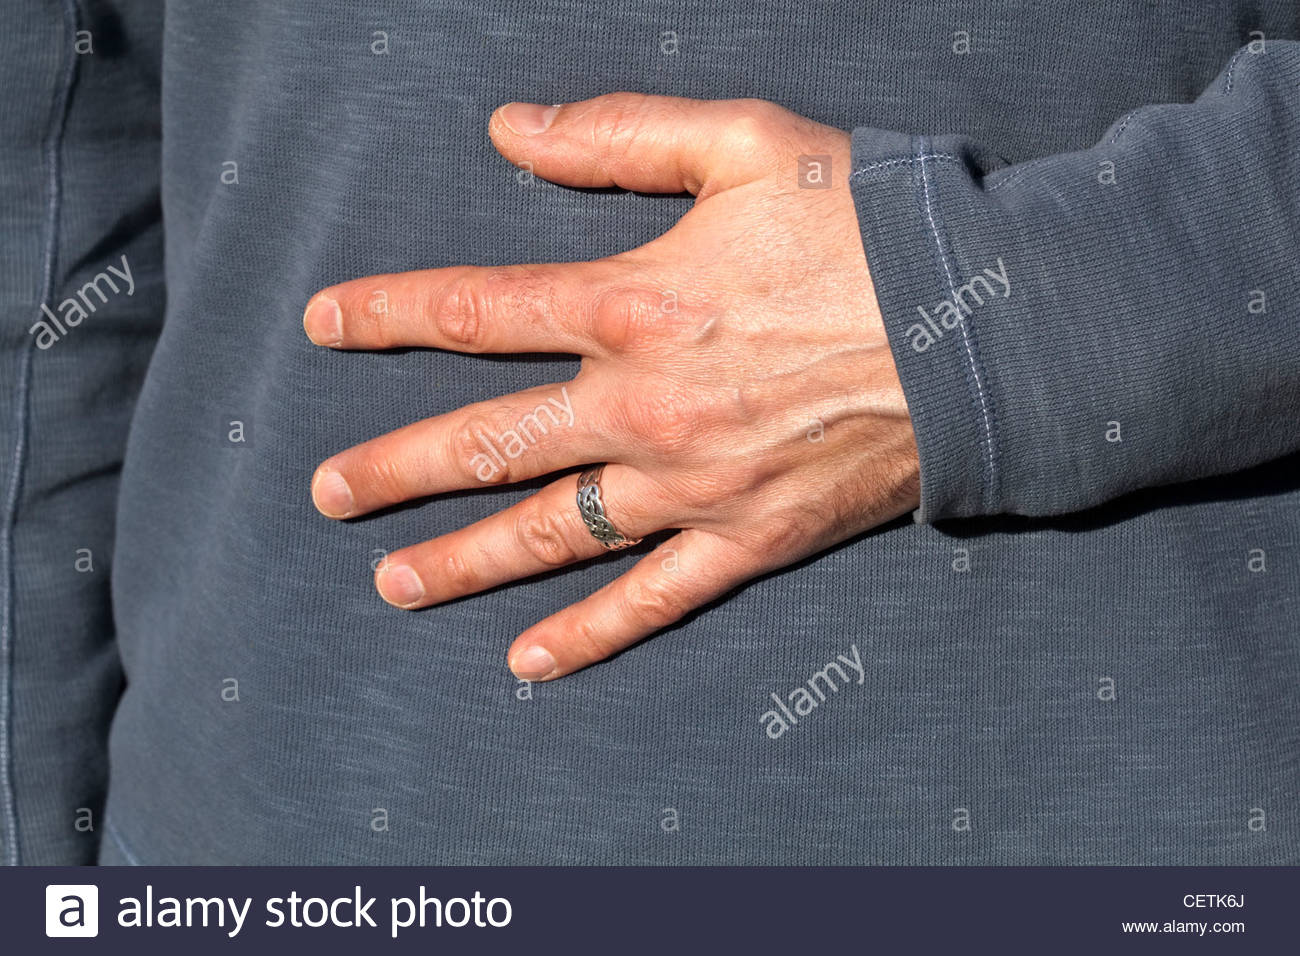 Man S Hand Wearing Silver Wedding Ring On Finger Stock Photo